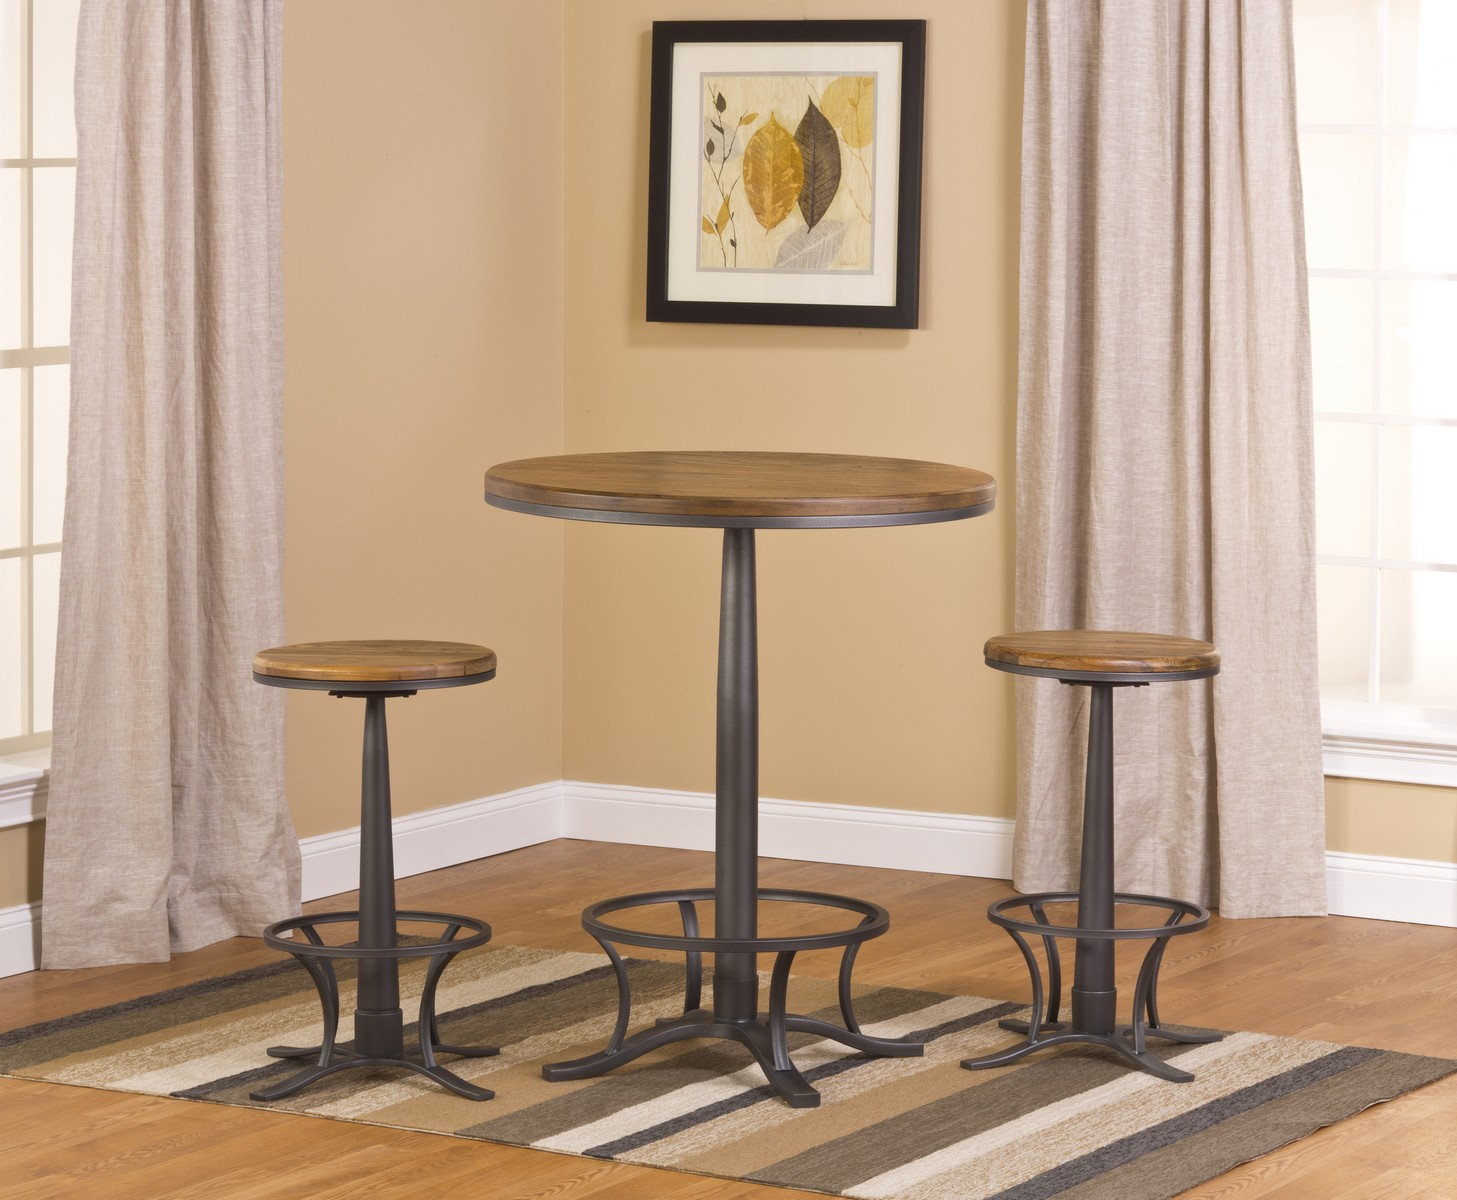 Hillsdale Westview Bar Height Bistro with Rivage Stools - Steel Gray/ Oak/ Black